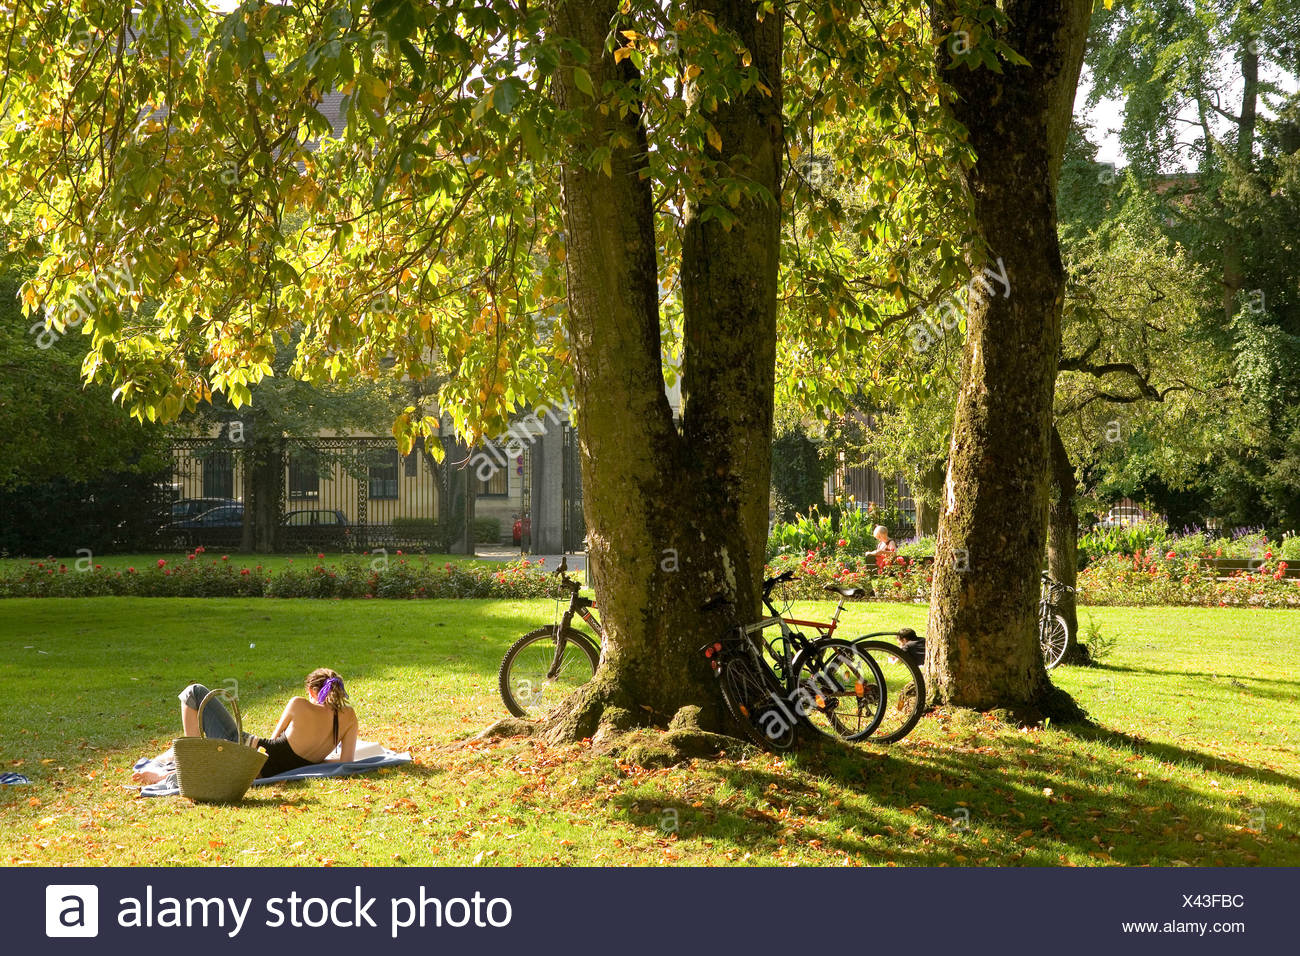 Late summer in Augsburg, Bavaria, Germany - Stock Image